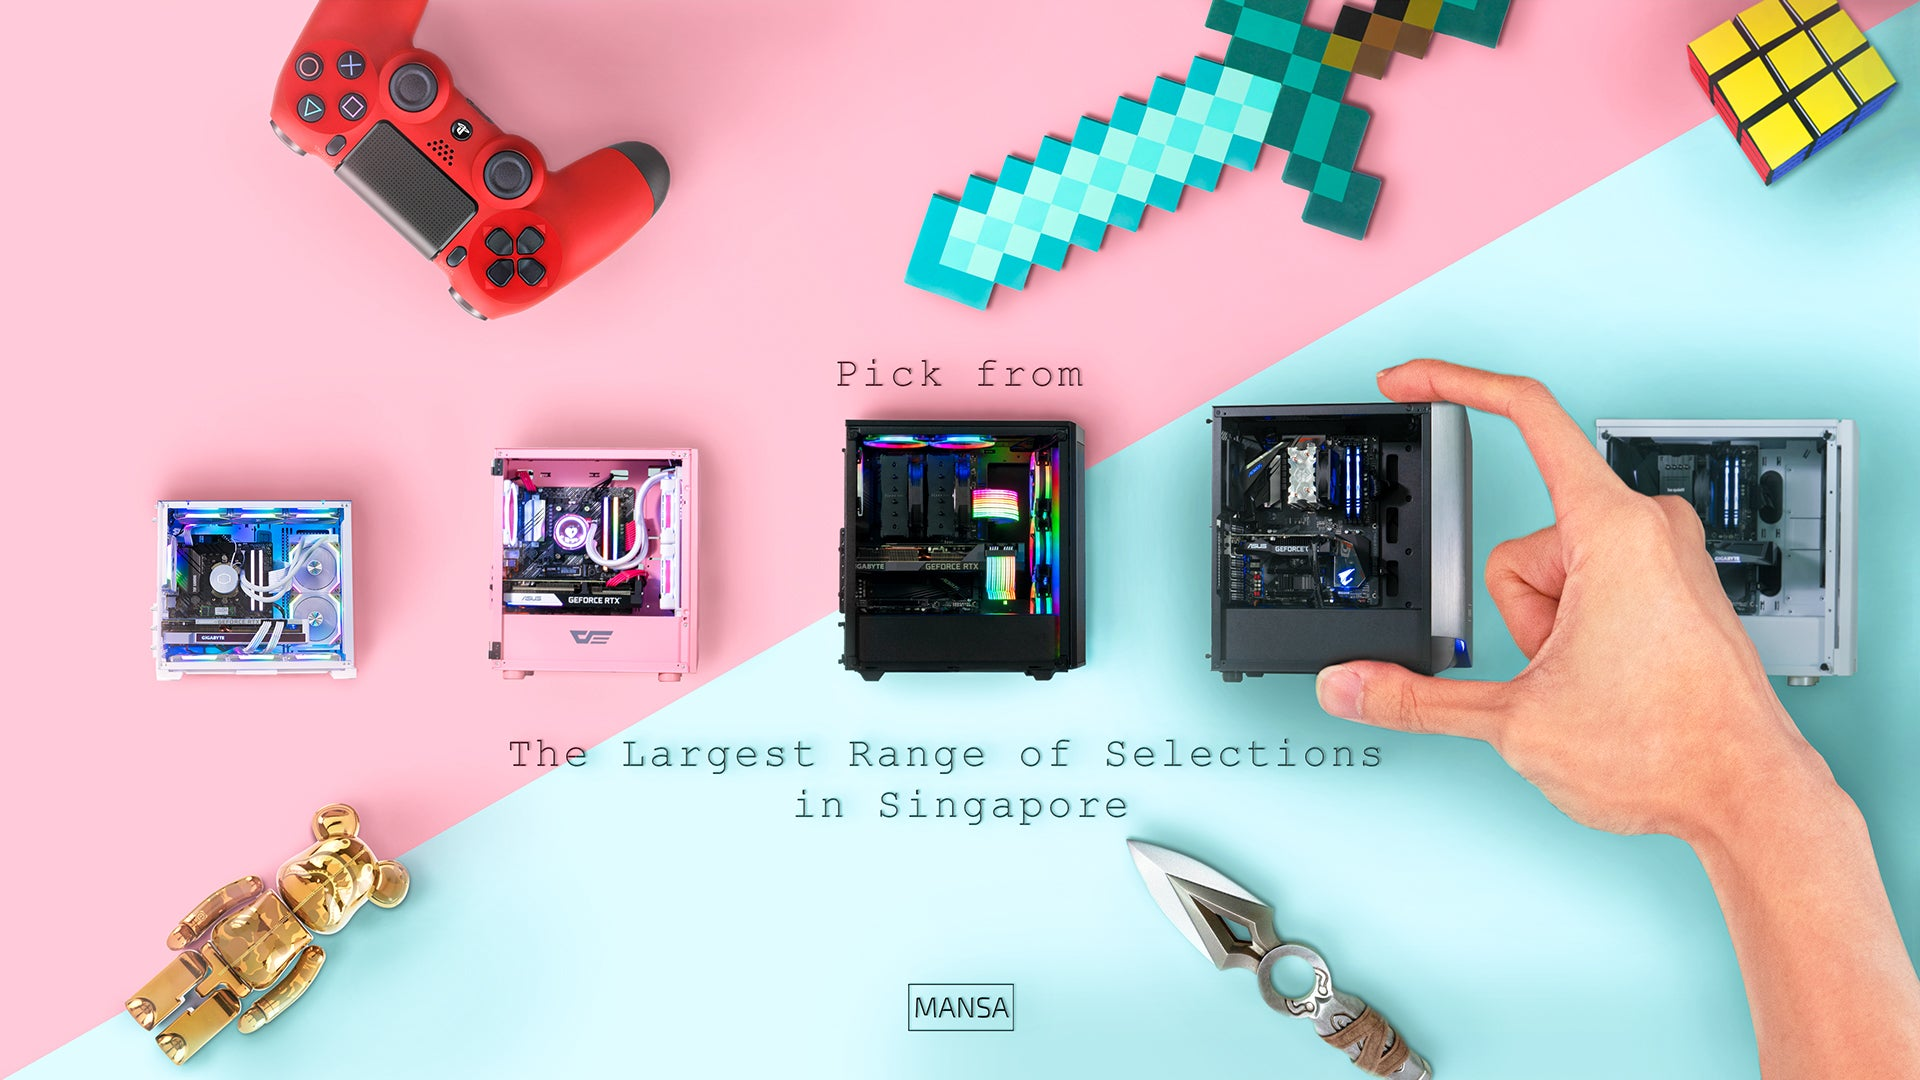 Pick form the largest range of selections in Singapore